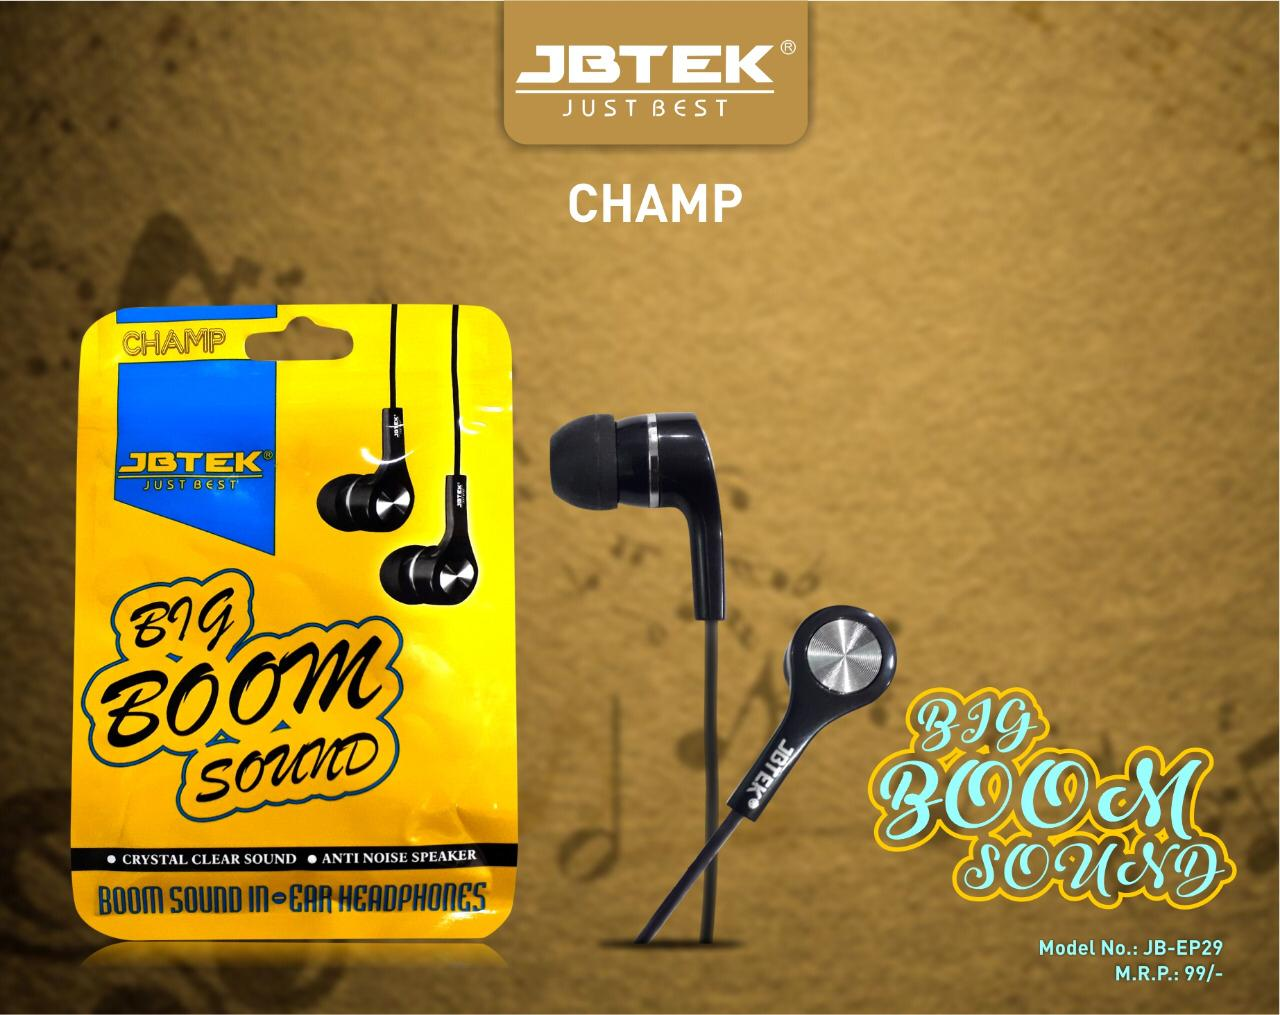 Jbtek Earphone Nokia Clip Boom Sound